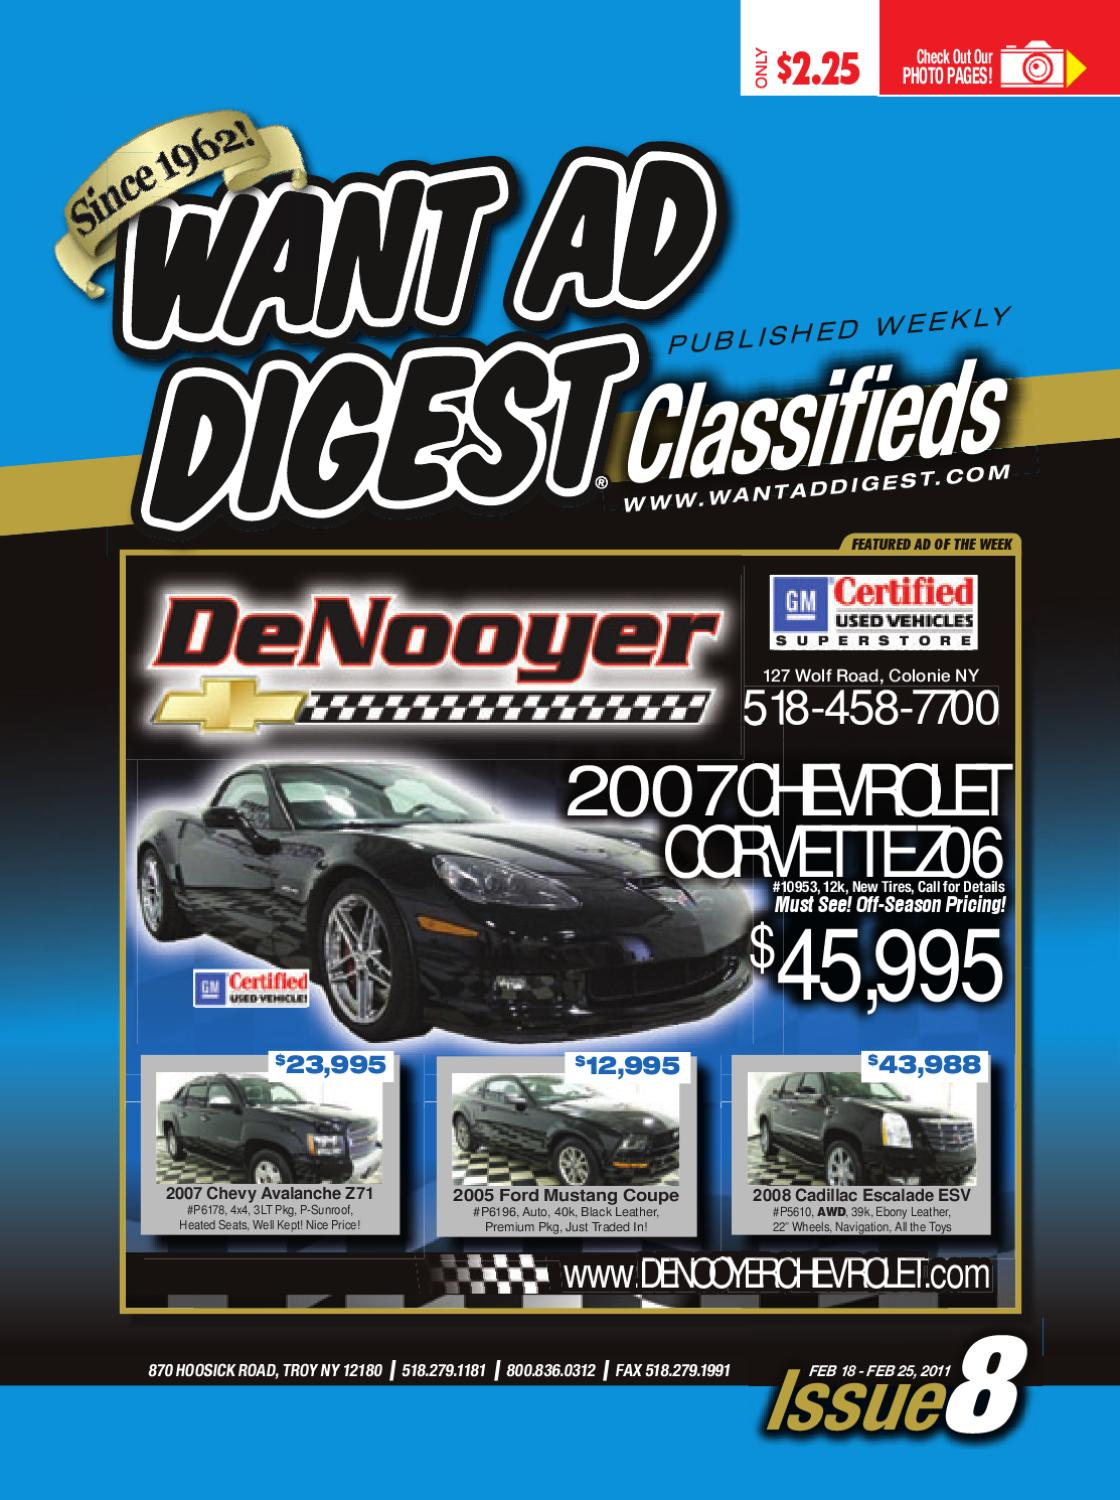 da905c55c8f Want Ad Digest by Want Ad Digest - issuu